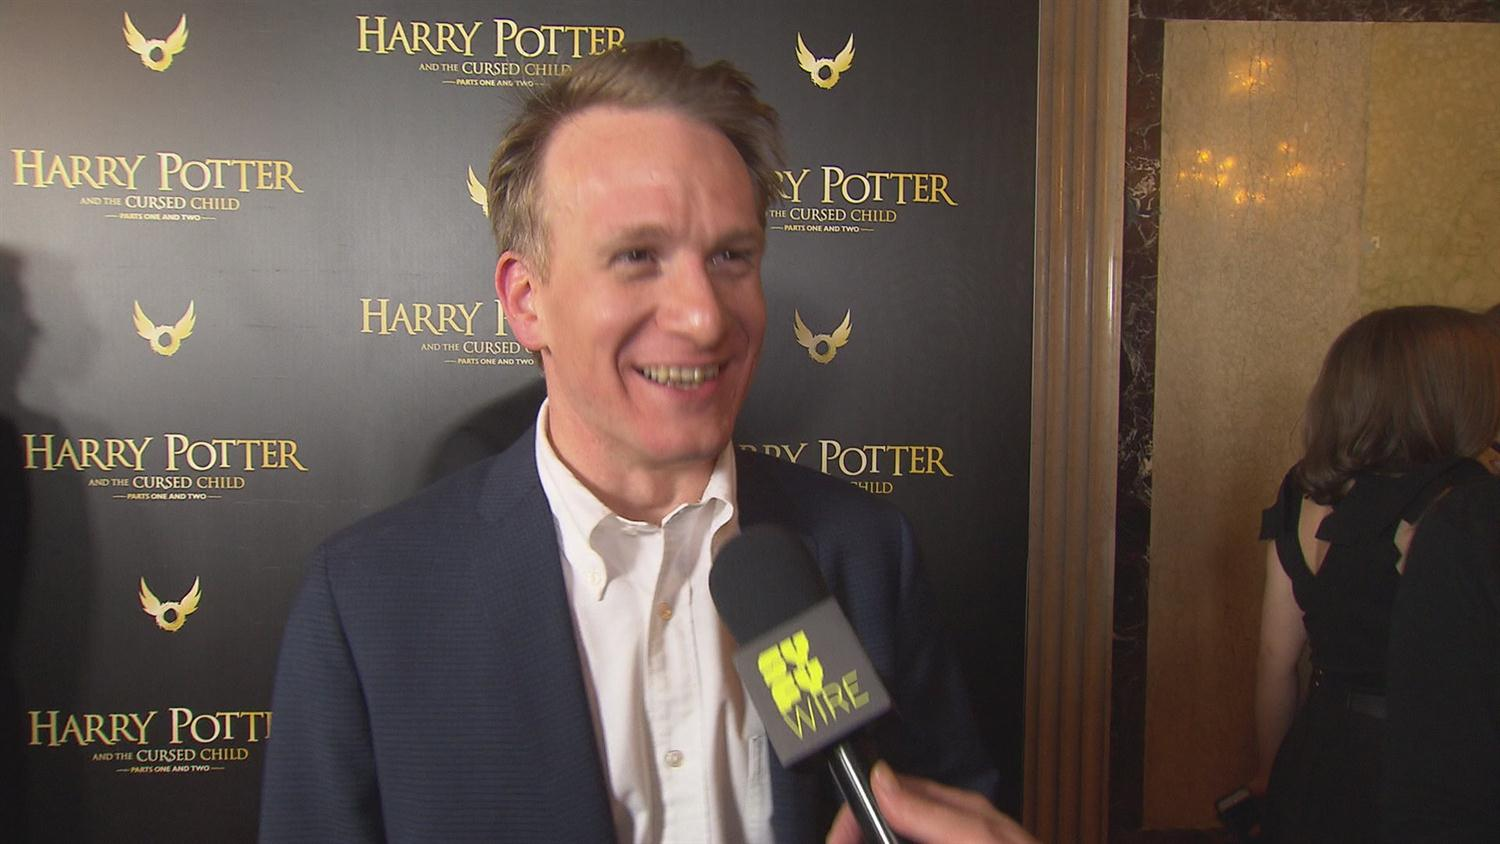 Harry Potter and the Cursed Child: The Broadway Cast Speaks!